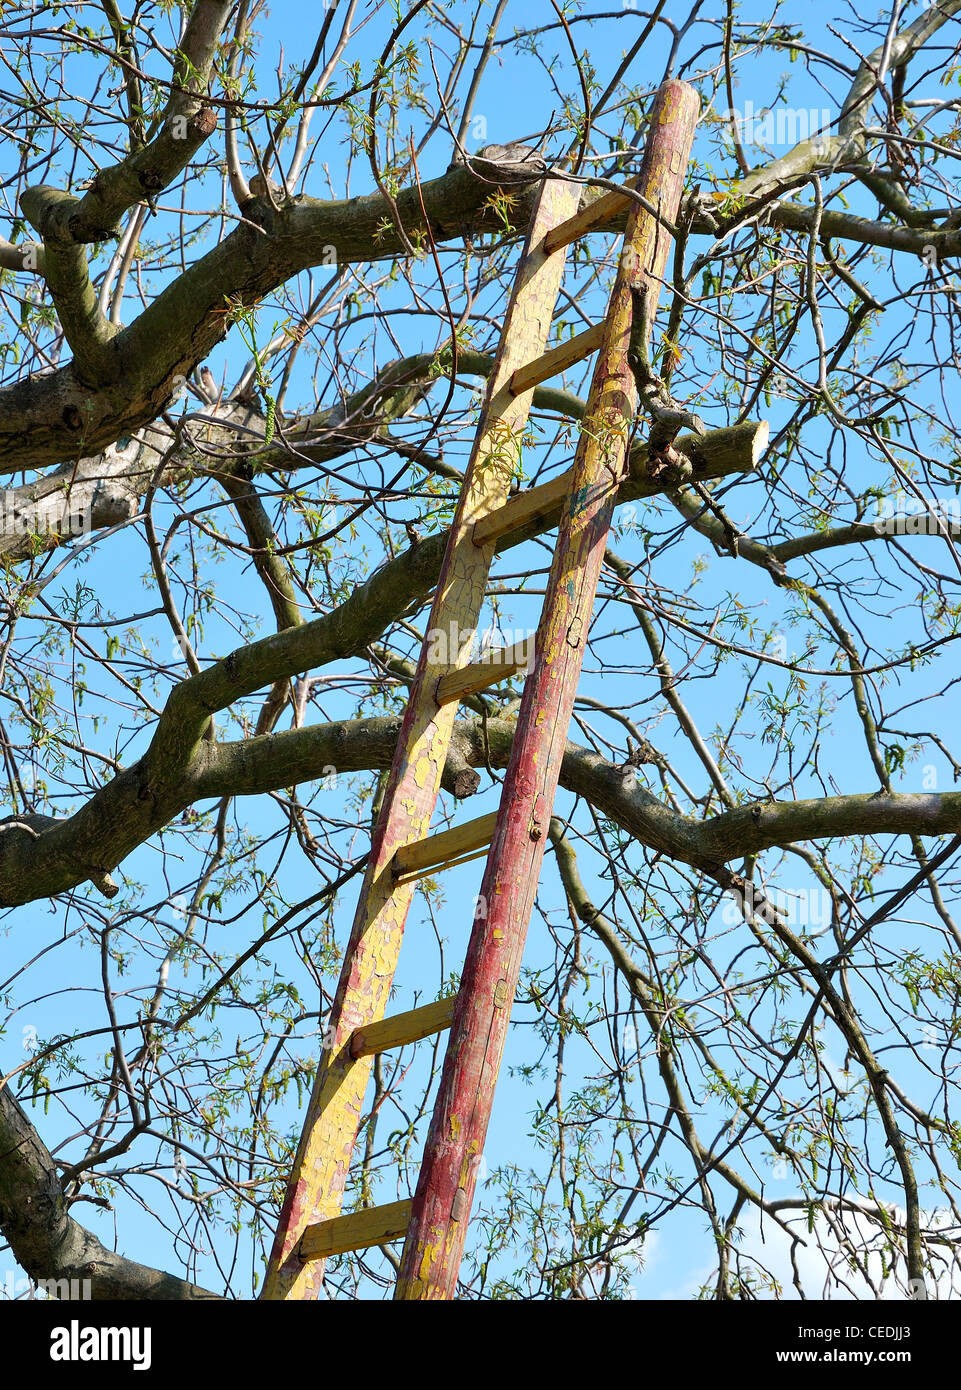 Step ladder leant against the tree. - Stock Image